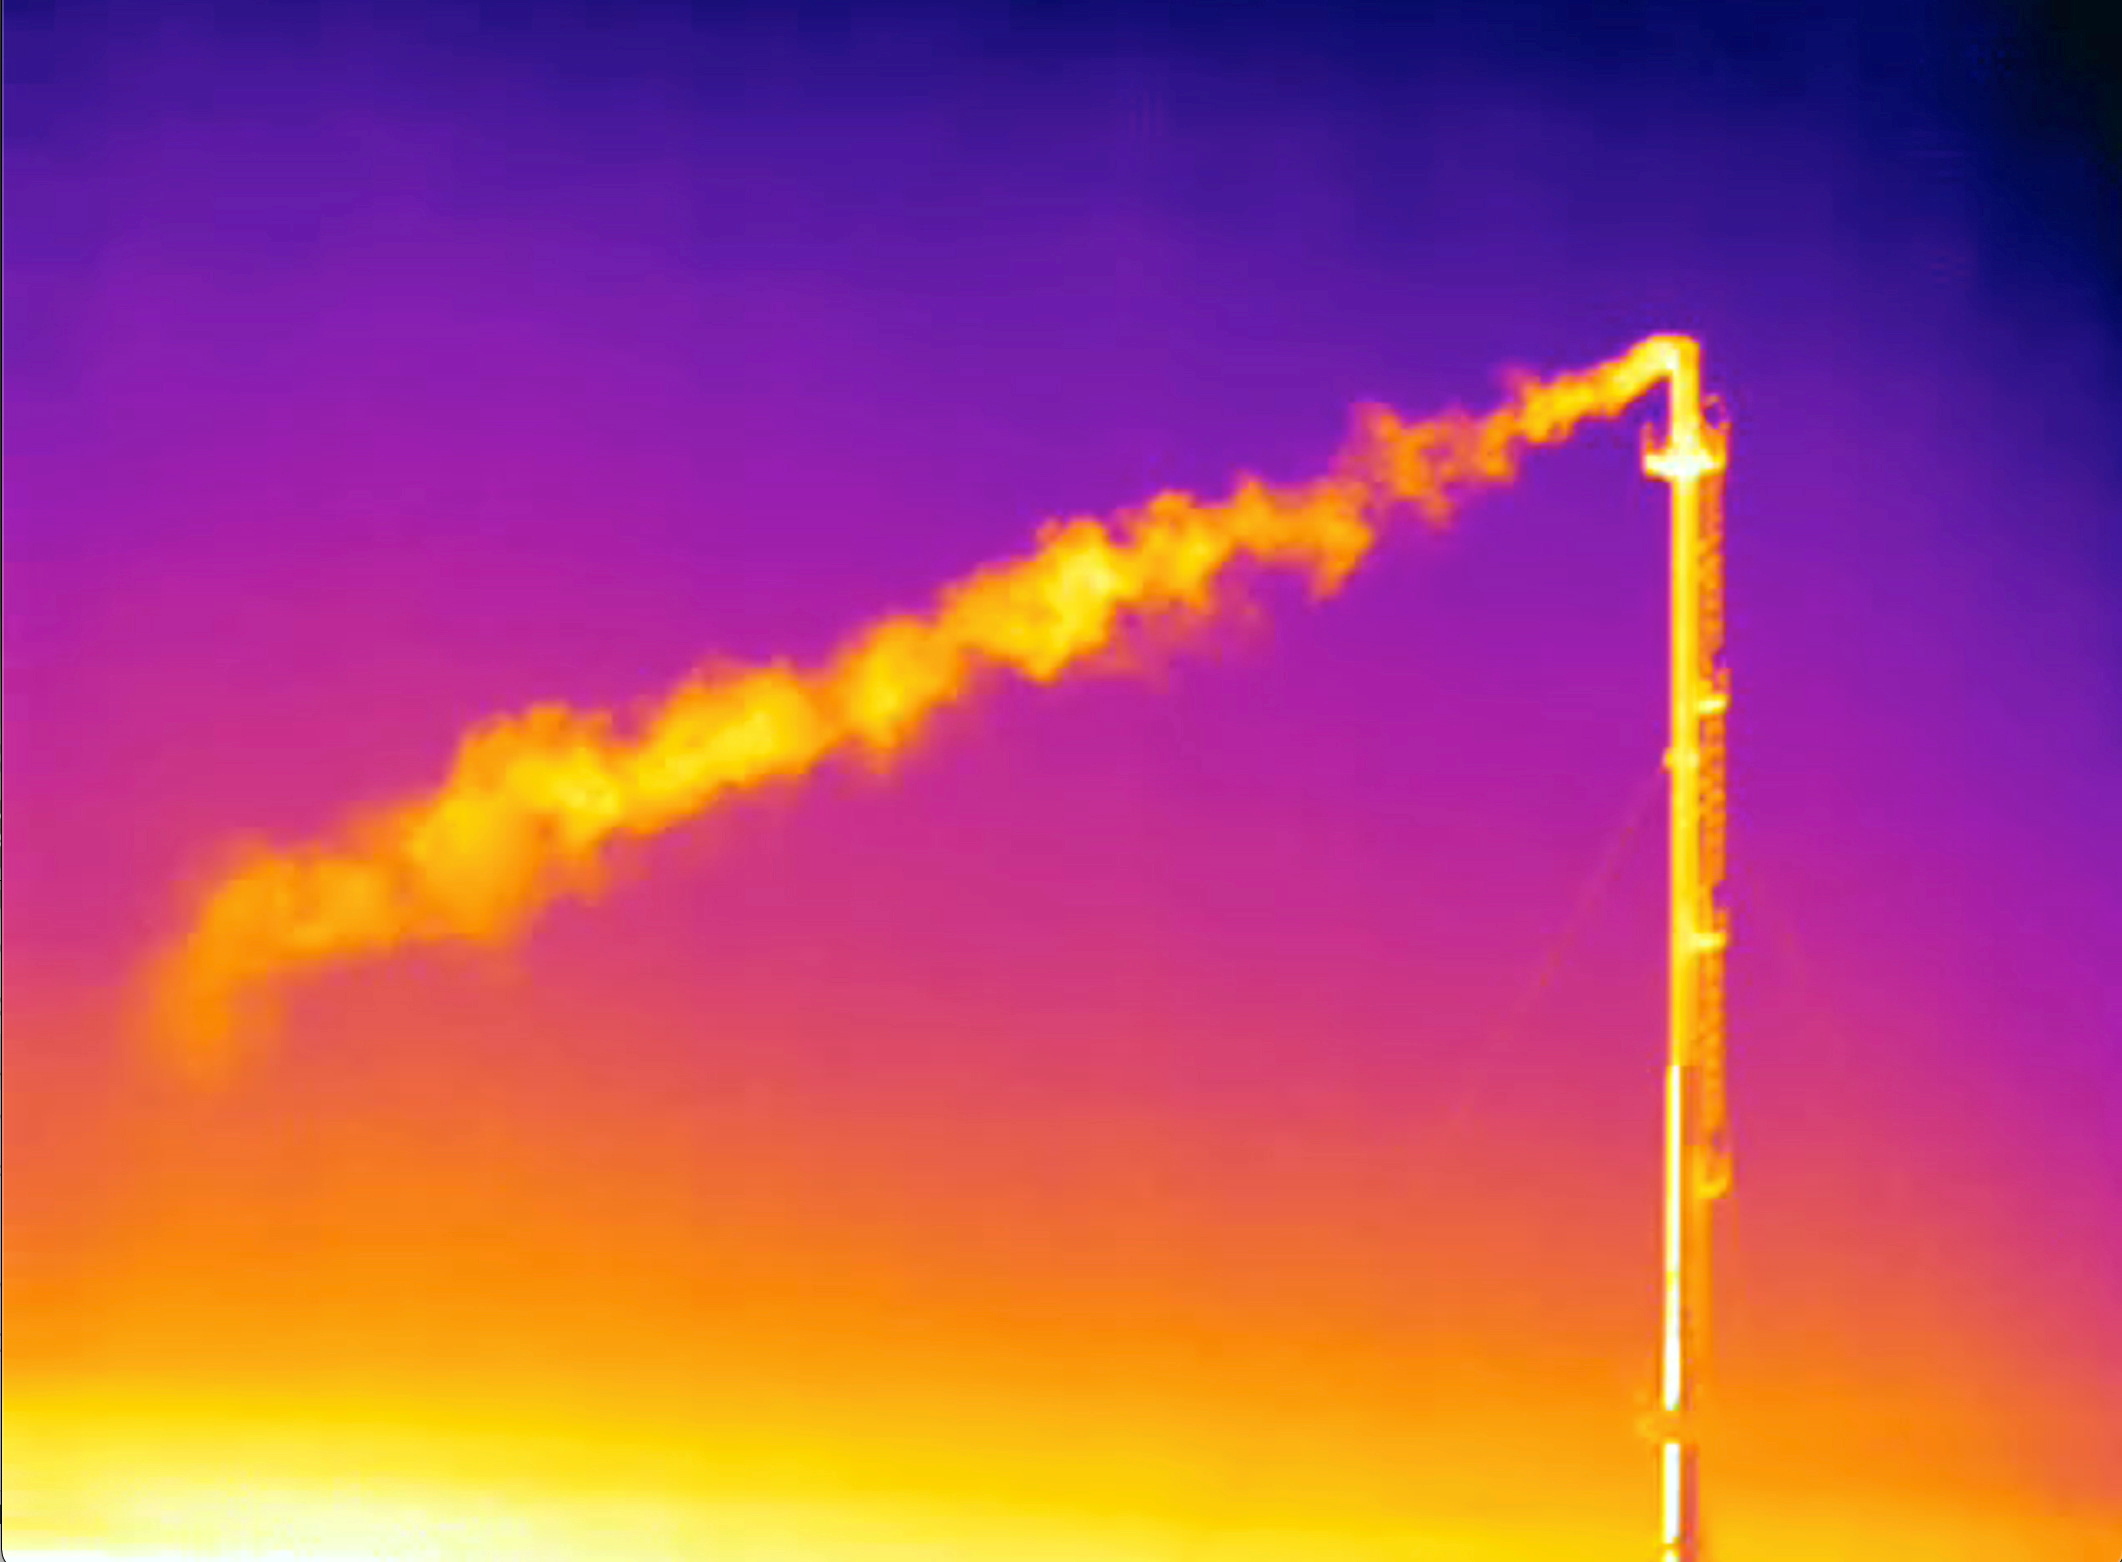 Thermographic video footage shows what appears to be a plume of methane gas flowing from a vent stack at a storage facility in Minerbio